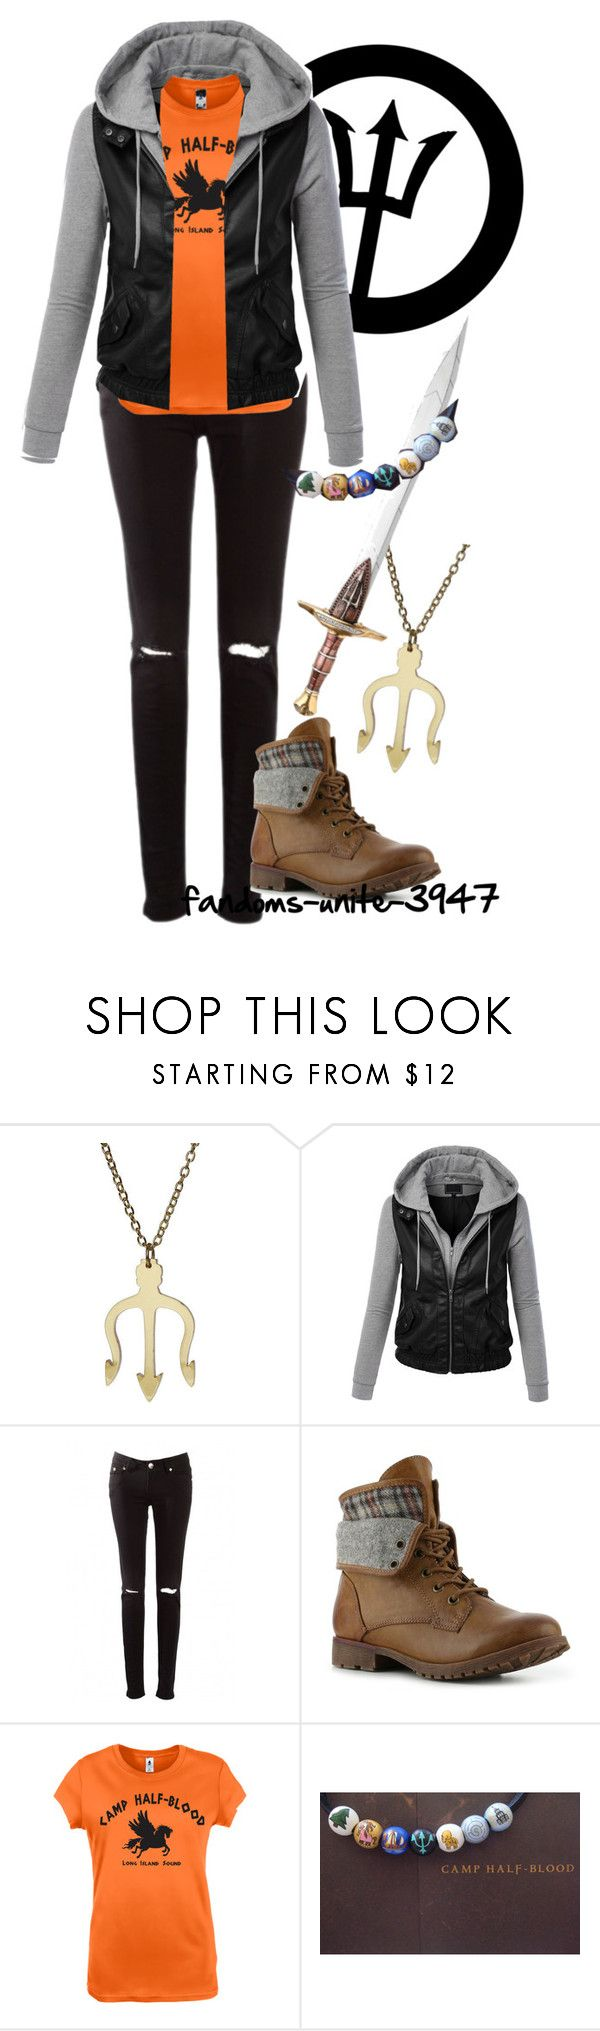 """""""DIY Halloween Costumes: Percy Jackson"""" by fandoms-unite-3947 ❤ liked on Polyvore featuring LE3NO and Rock & Candy"""